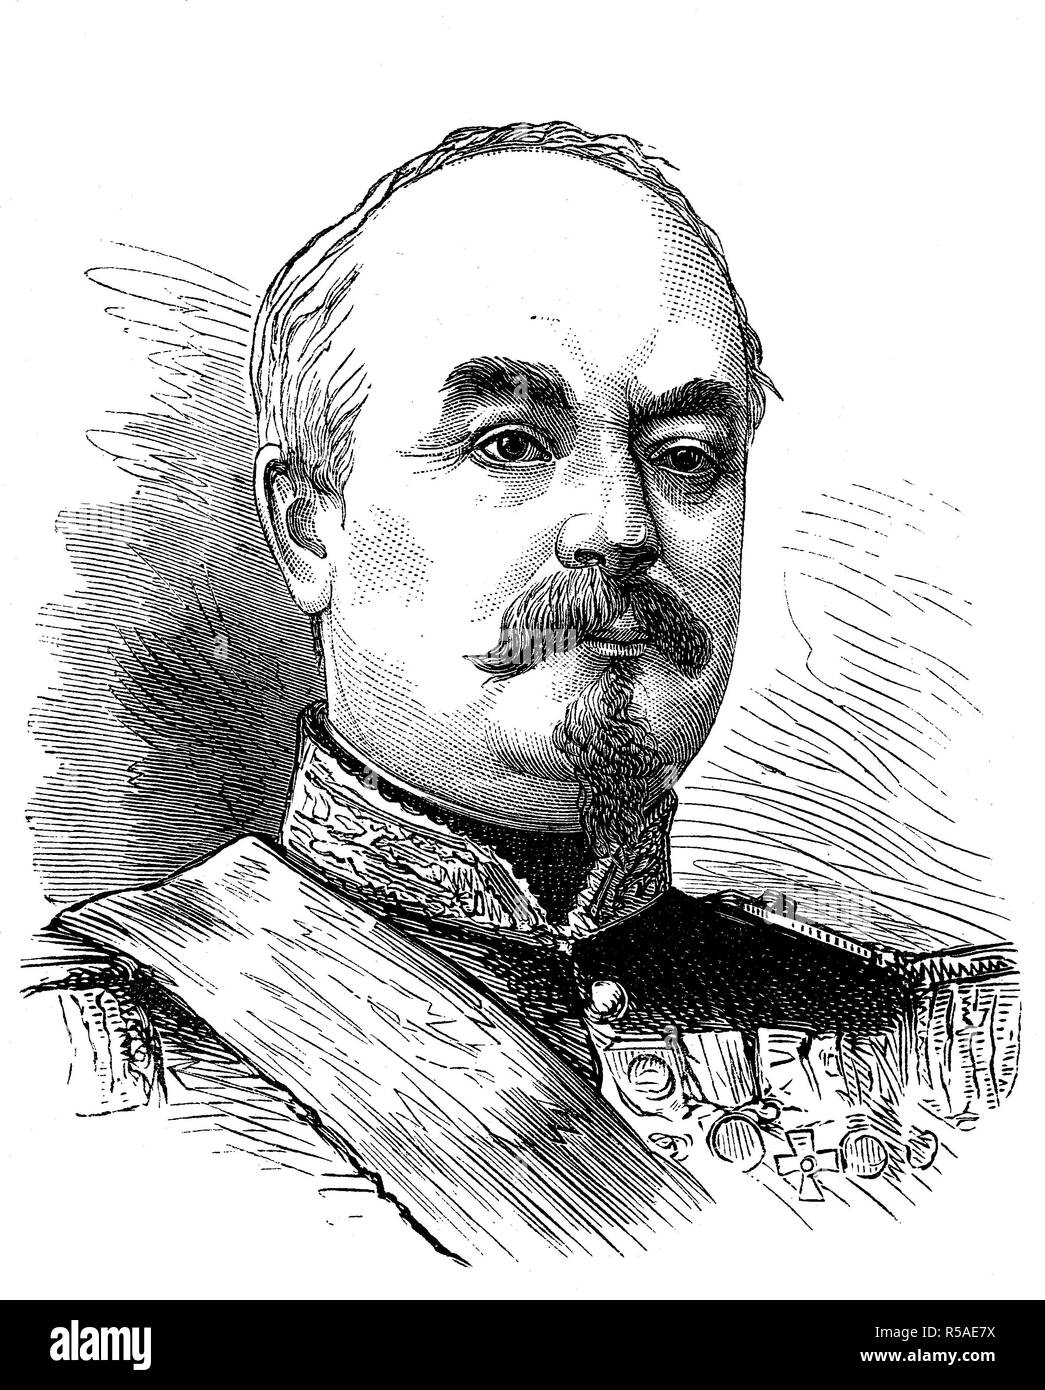 François Achille Bazaine, 13 February 1811, 23 September 1888, was an officer of the French army, woodcut, portrait, France - Stock Image